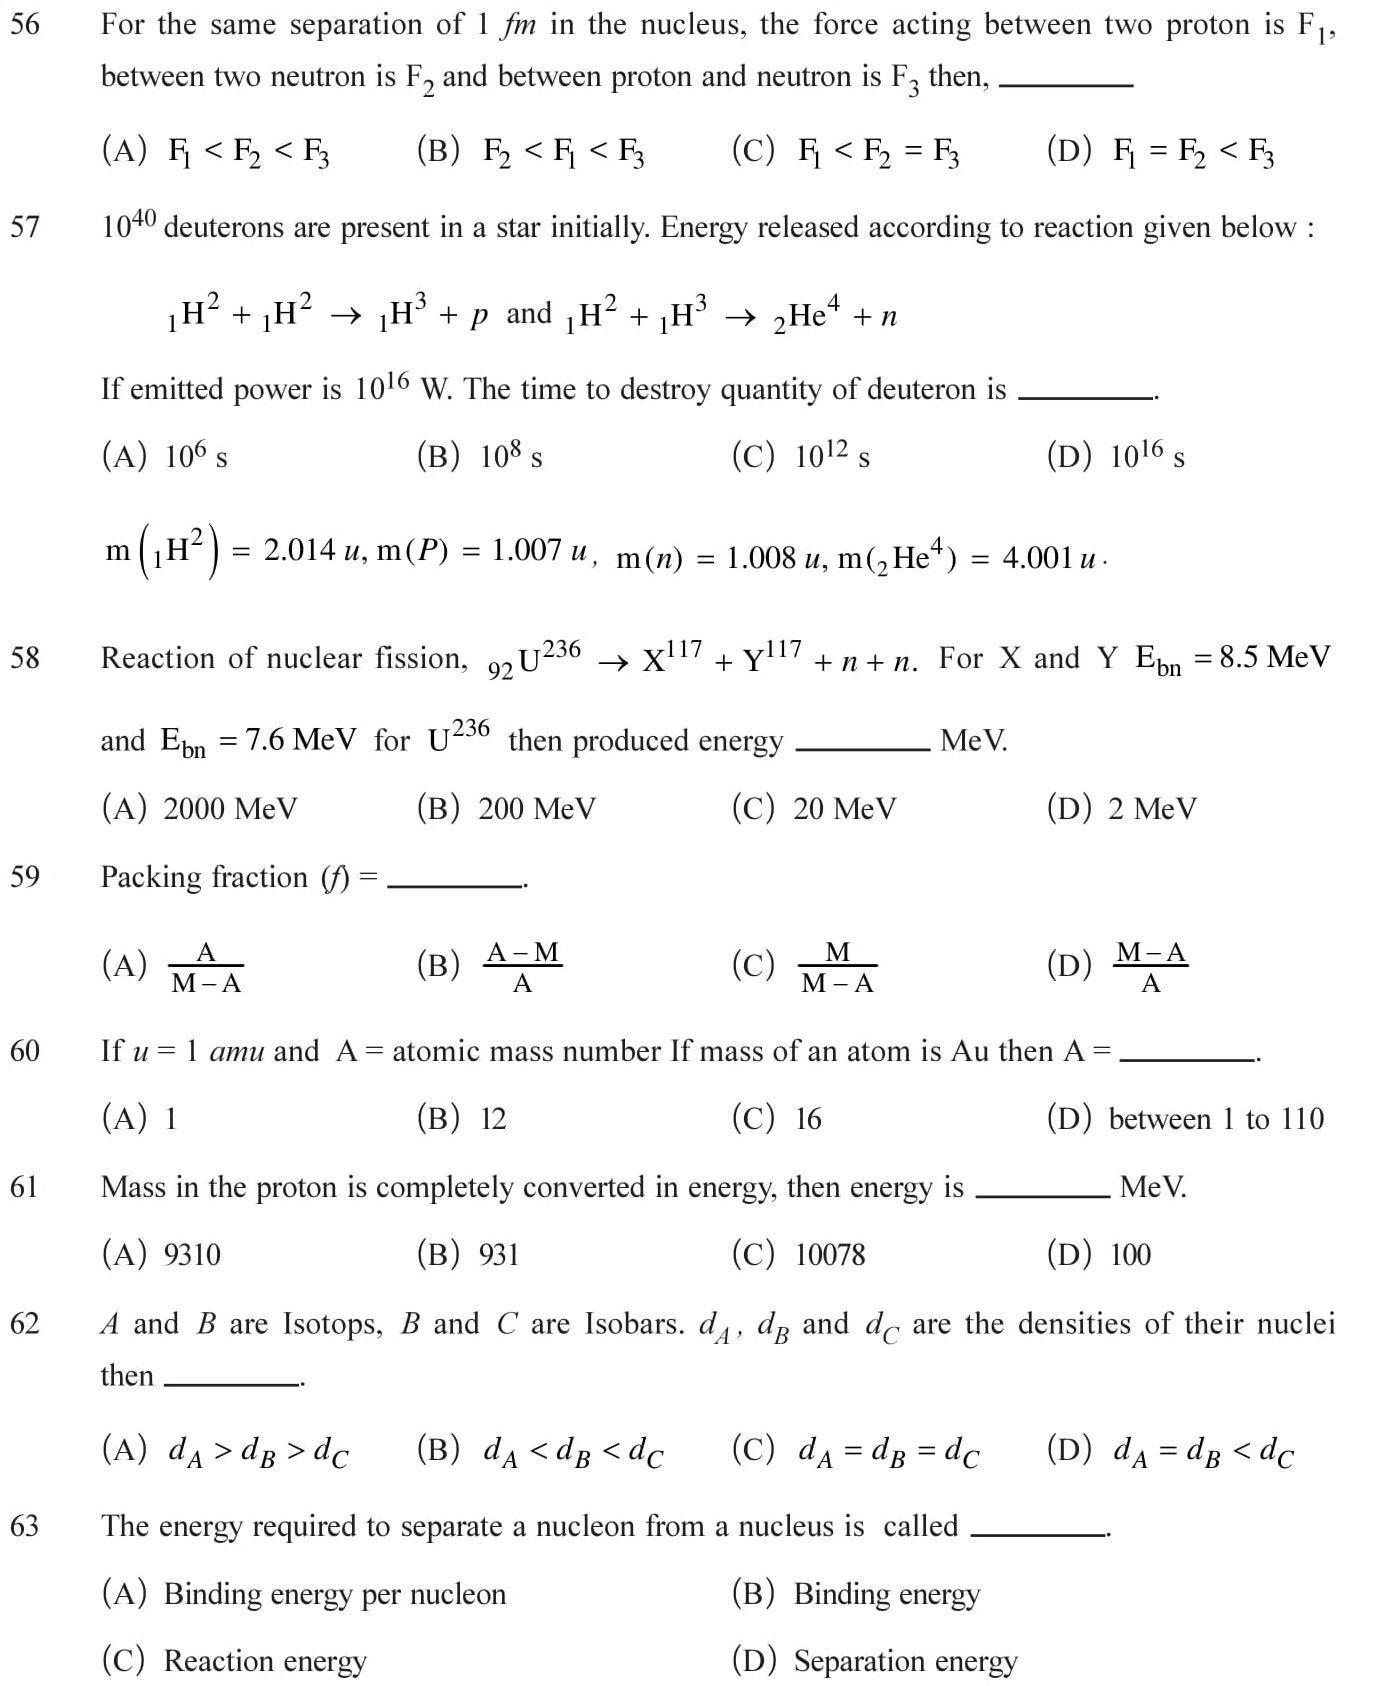 NCERT Solutions For Class 12 Physics Chapter 13 Nuclei In